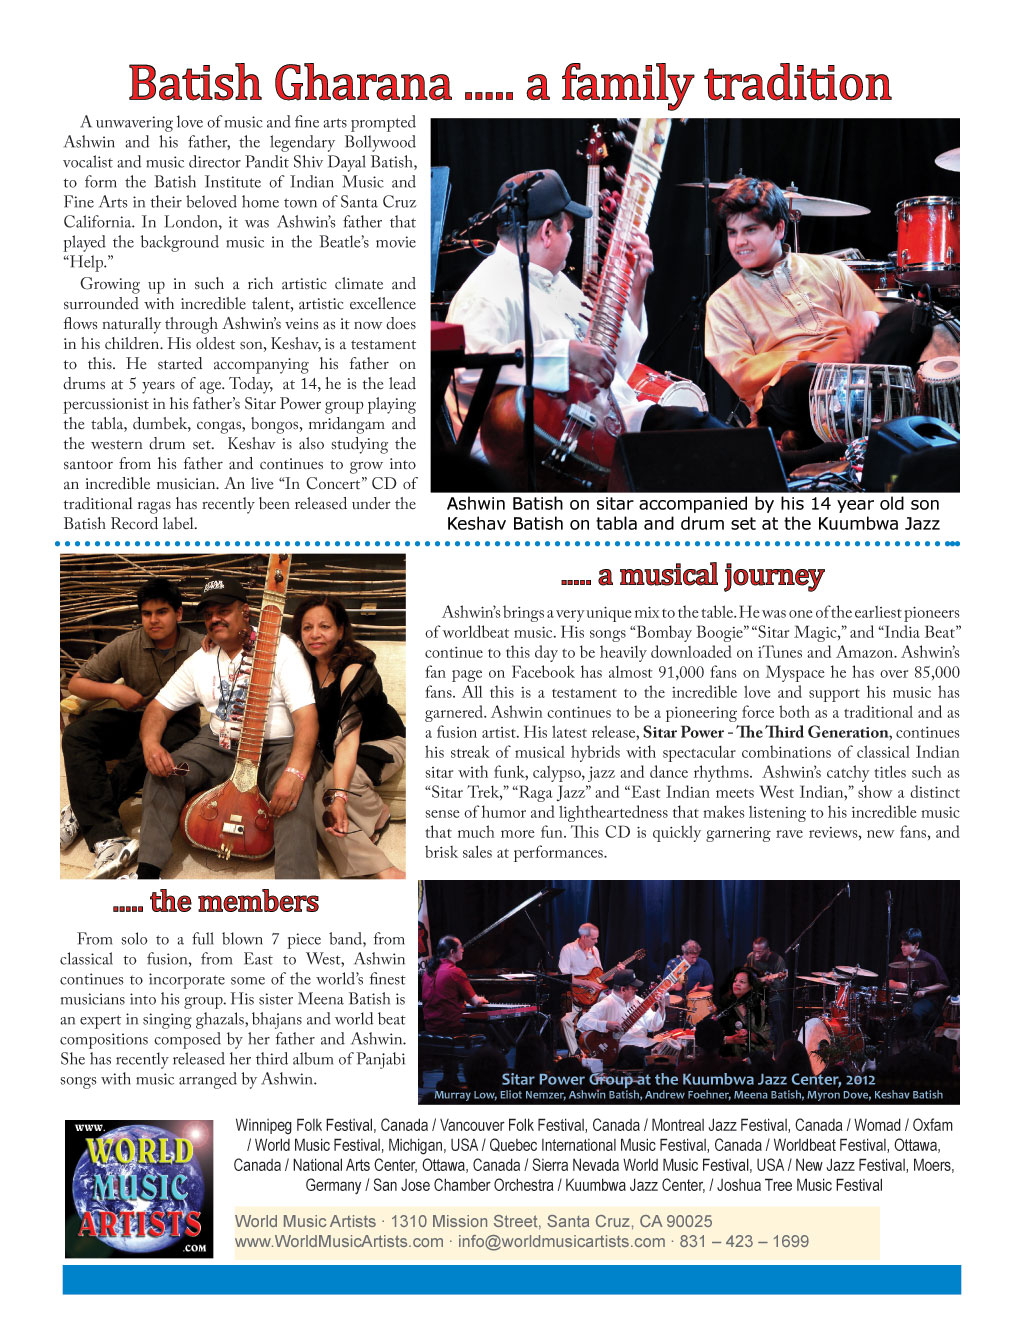 World Beat Raga Rock! Sitar Power Man Ashwin Batish Artist One Sheet, Front Page �2012 Ashwin Batish, Batish Records (831) 423-1699